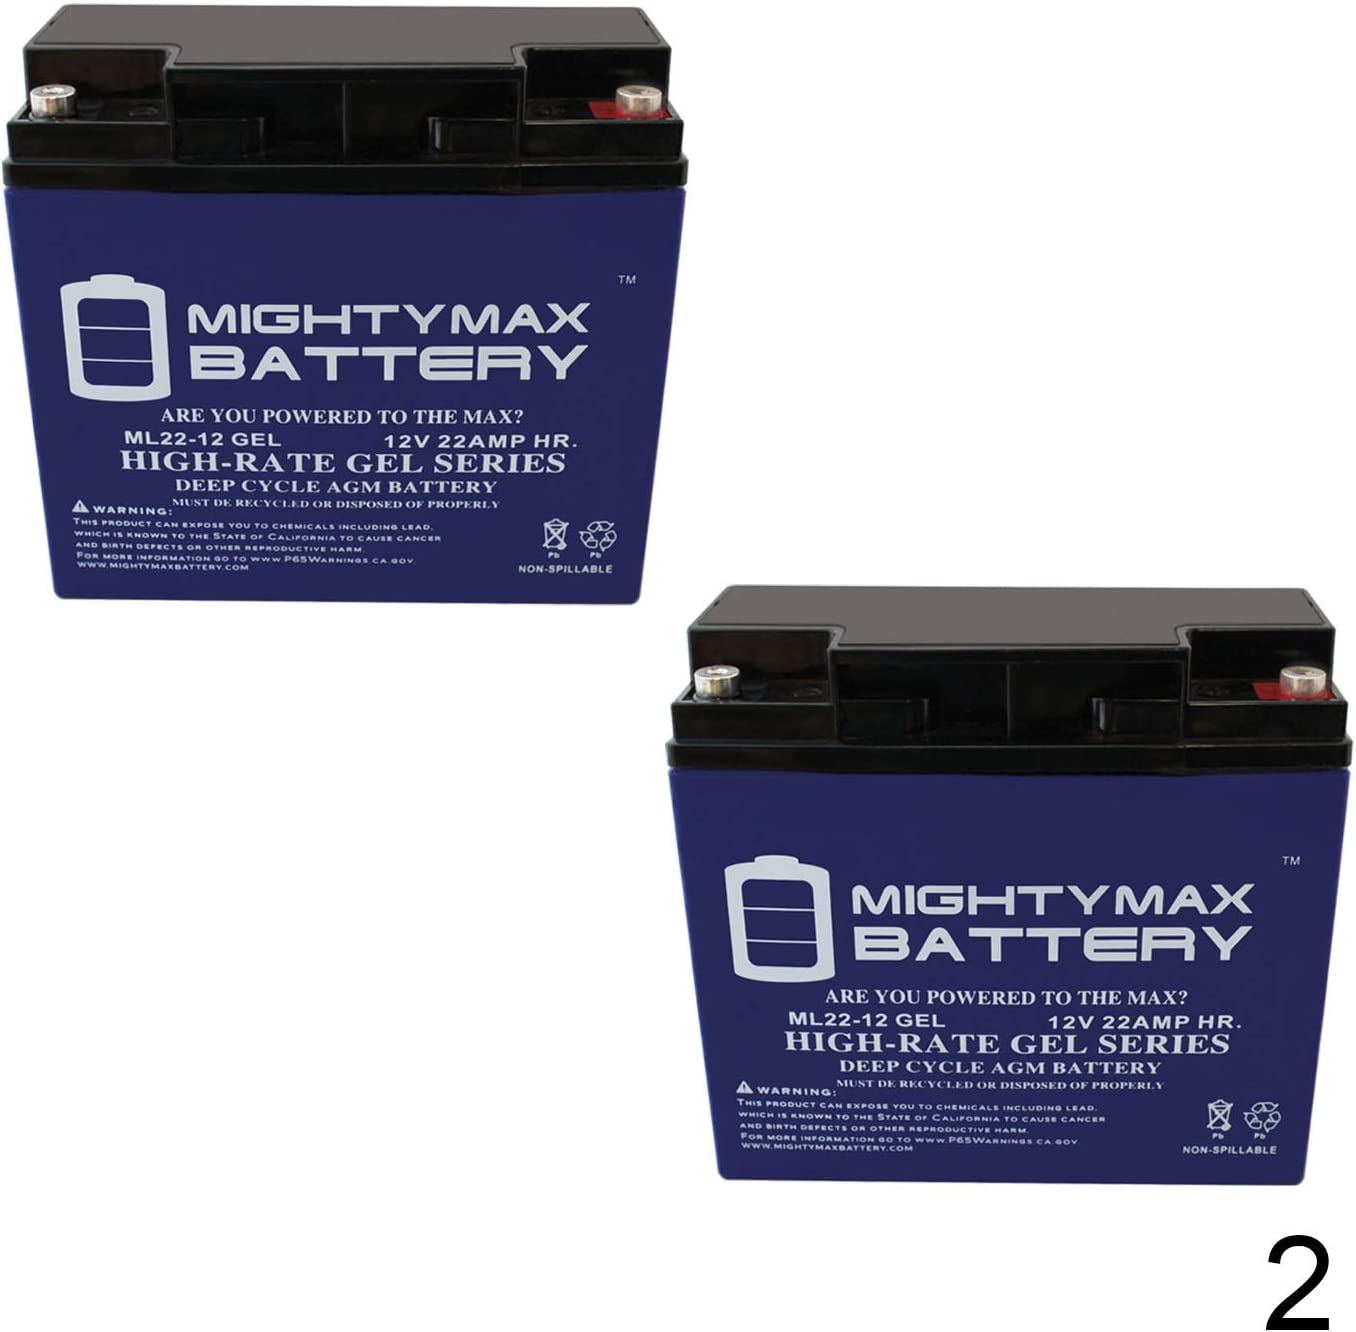 Mighty Max Battery 12V 22AH Gel Battery for Minuteman M220028K17 2 Pack Brand Product M220028K17 Scrubber